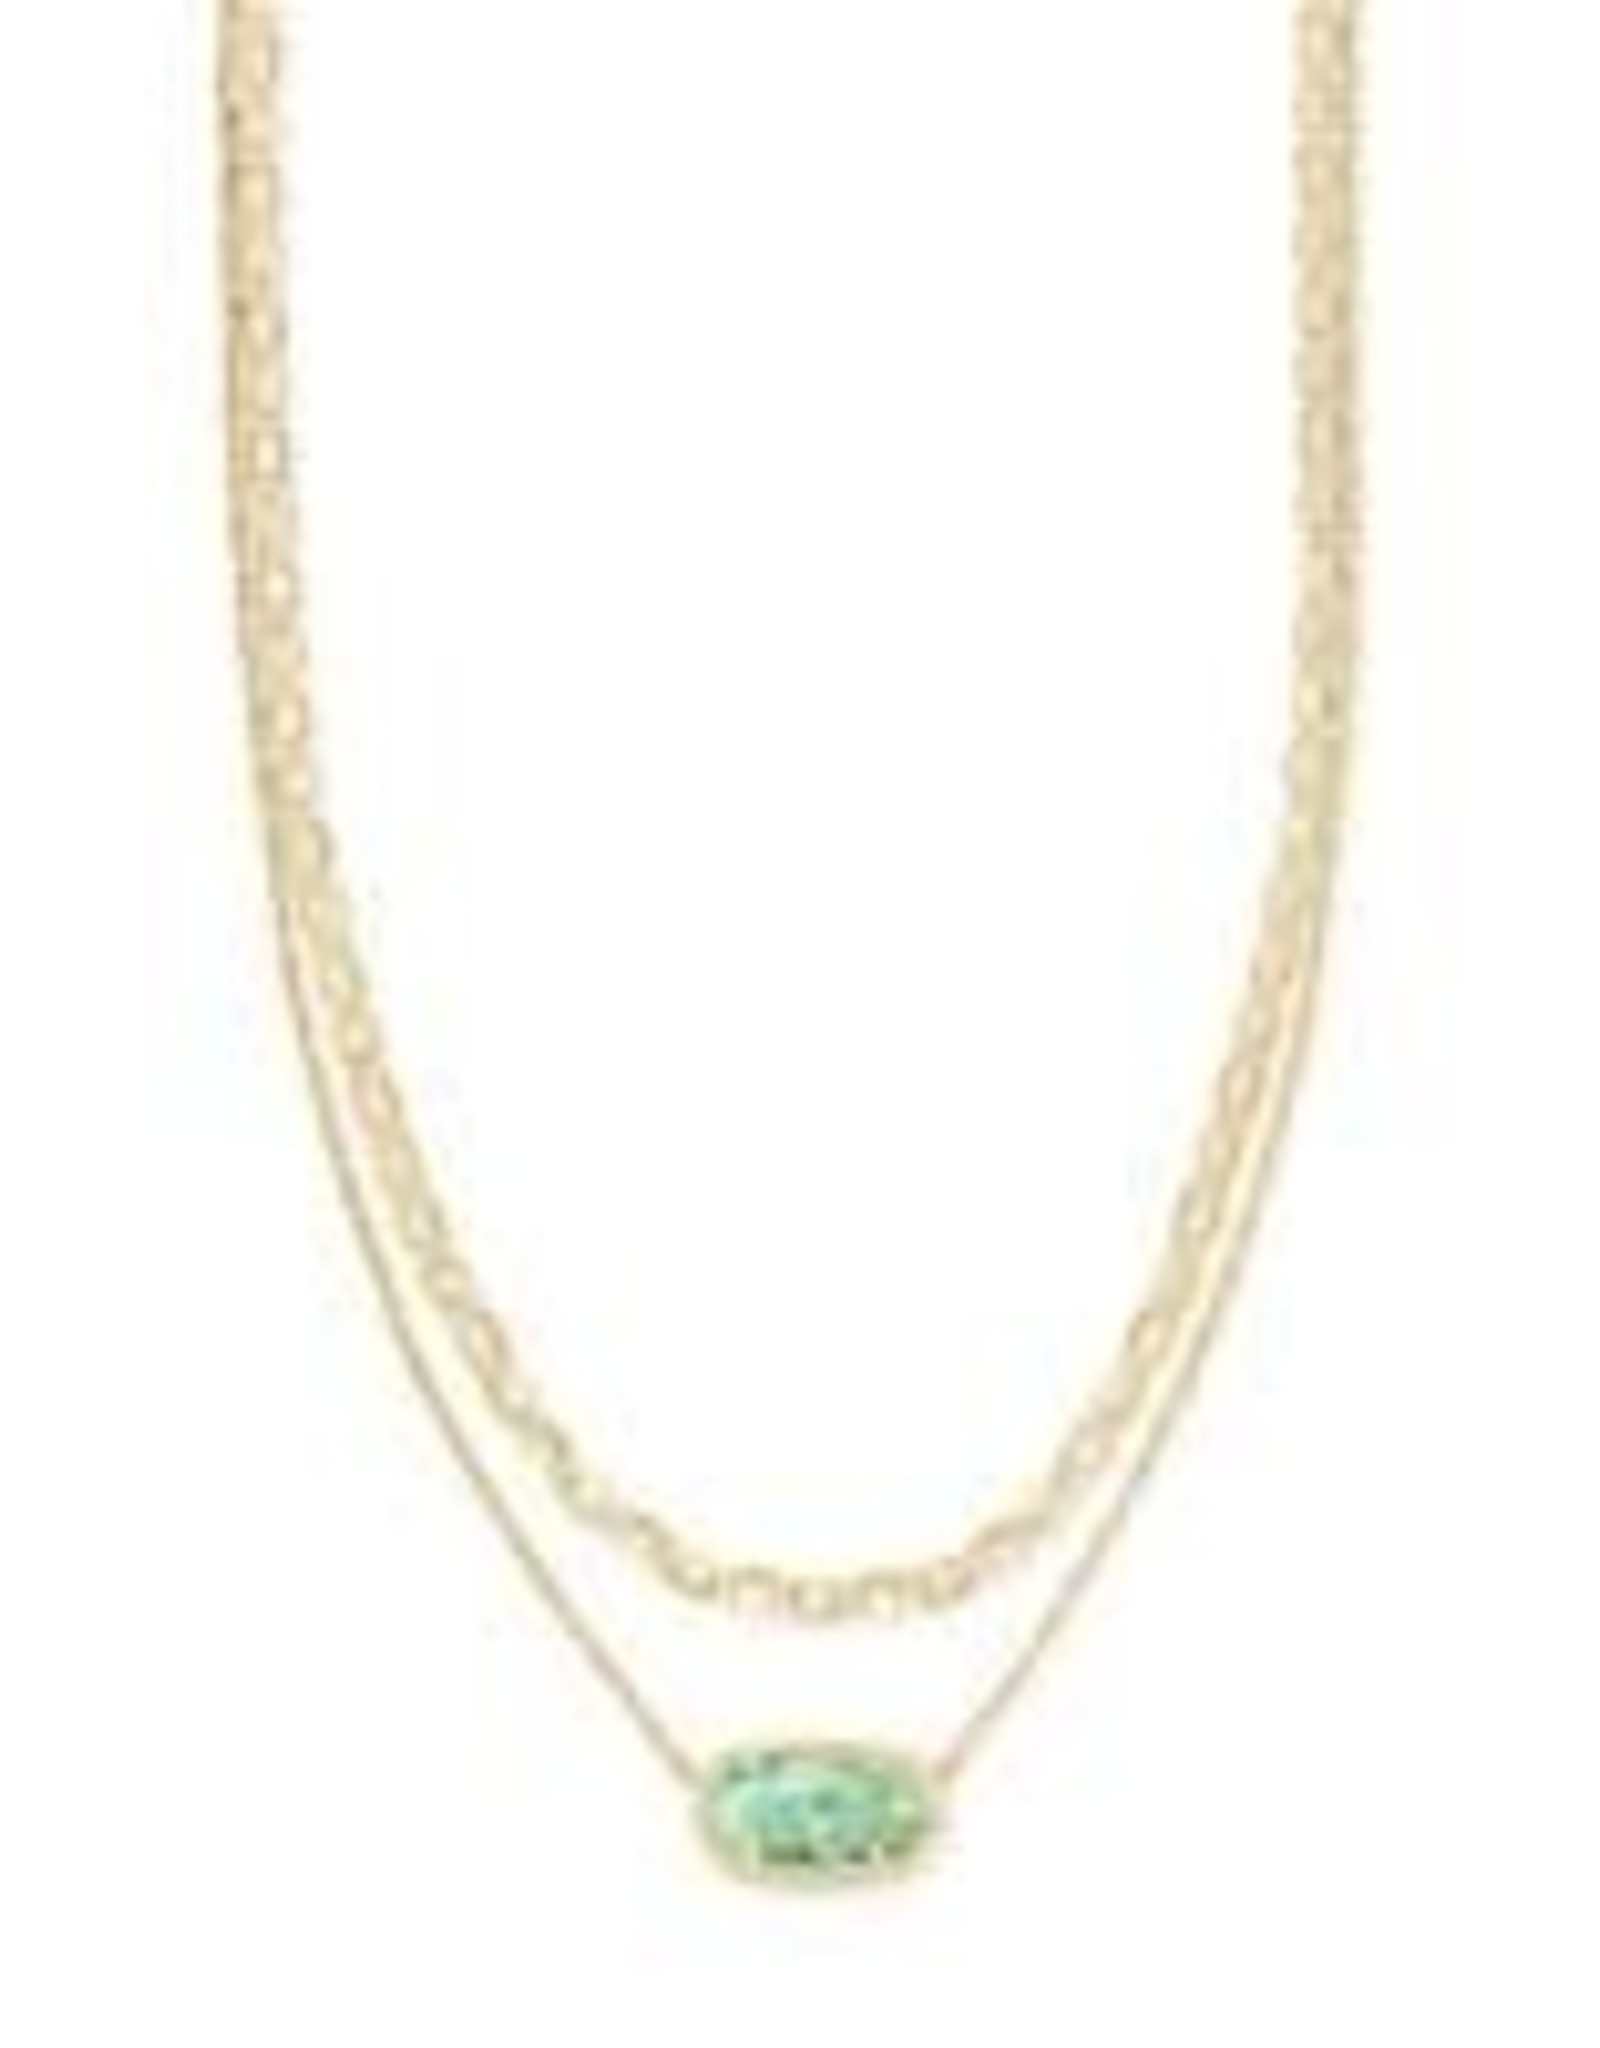 Kendra Scott Kendra Scott Elisa Multistrand Necklace